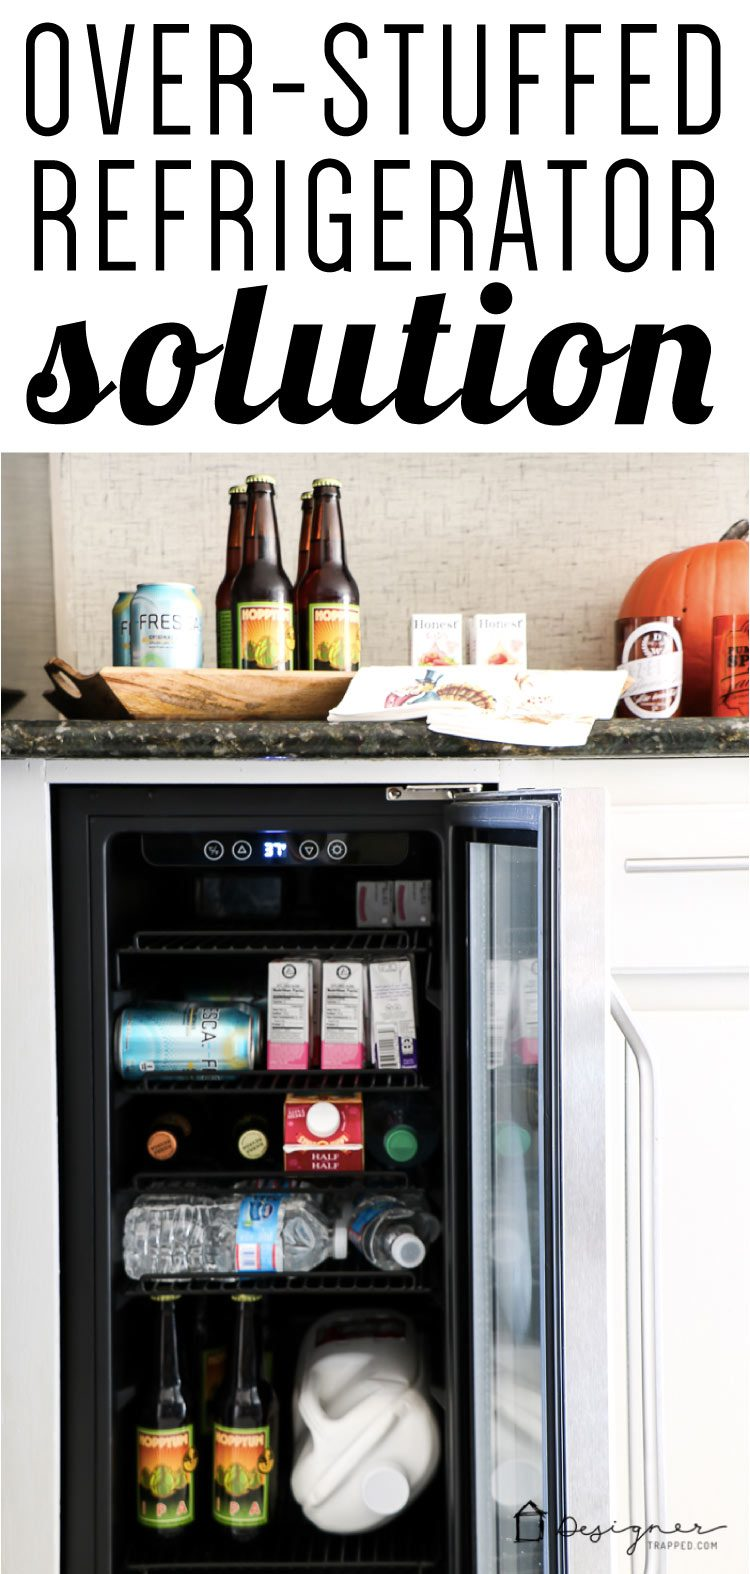 Need more room in your refrigerator? Add a beverage fridge for a stuffed fridge solution! Affordable and practical. #ad #newairusa